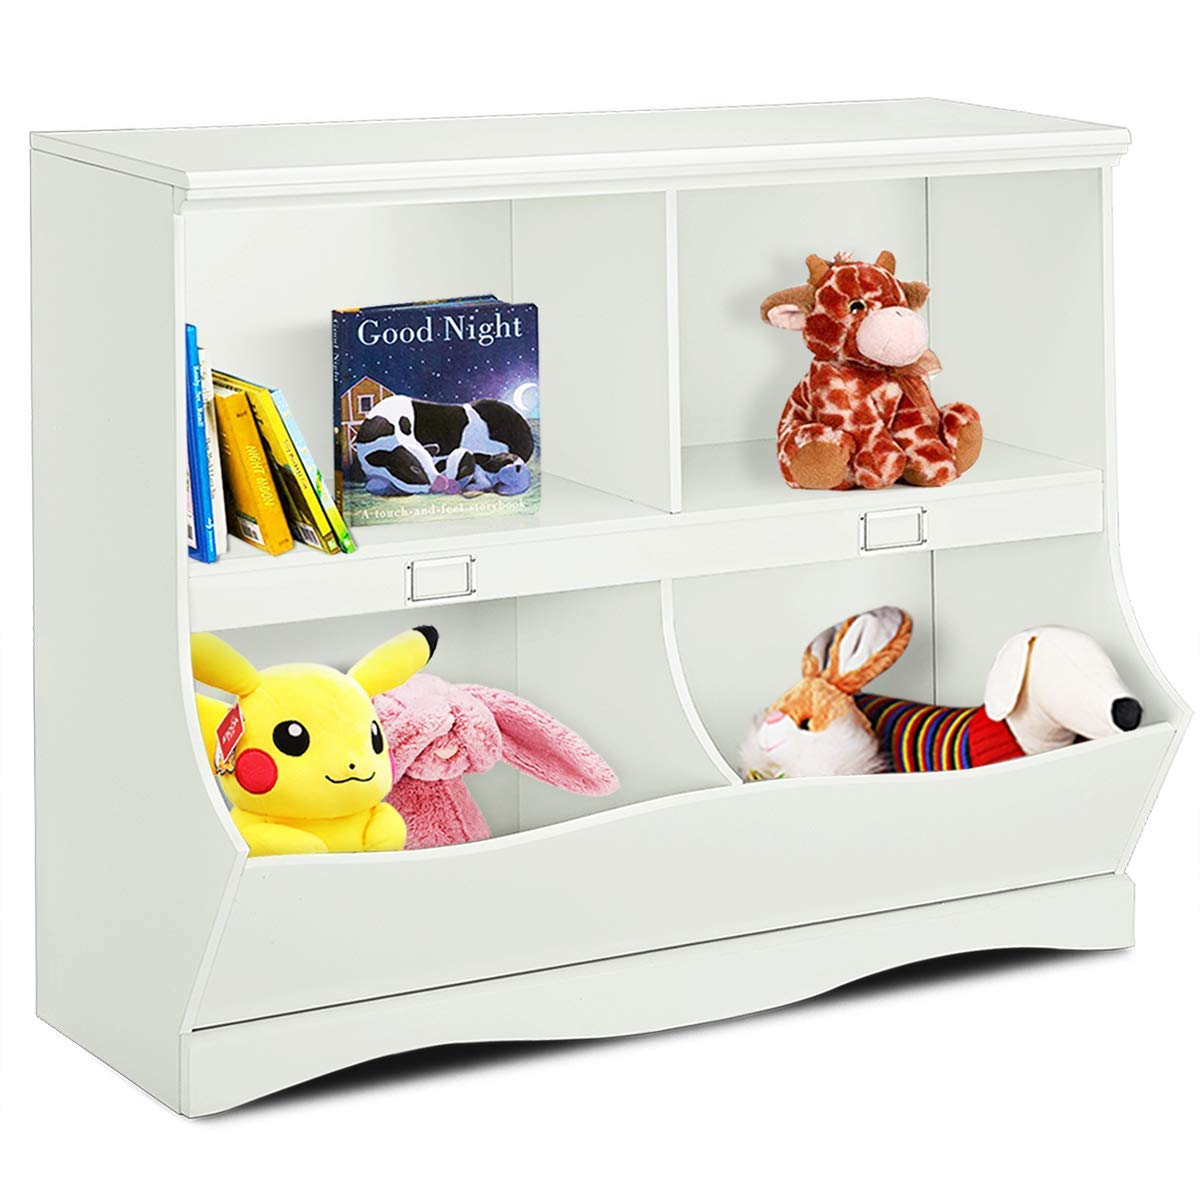 Costzon Multipurpose Toy Storage Organizer, Open Storage Toy Organizing Cubby, Multi-Bin Organizer Wooden Cabinet with Footboard, Nursery Bookshelf for Children Girls & Boys Bedroom Decor Room, White by Costzon